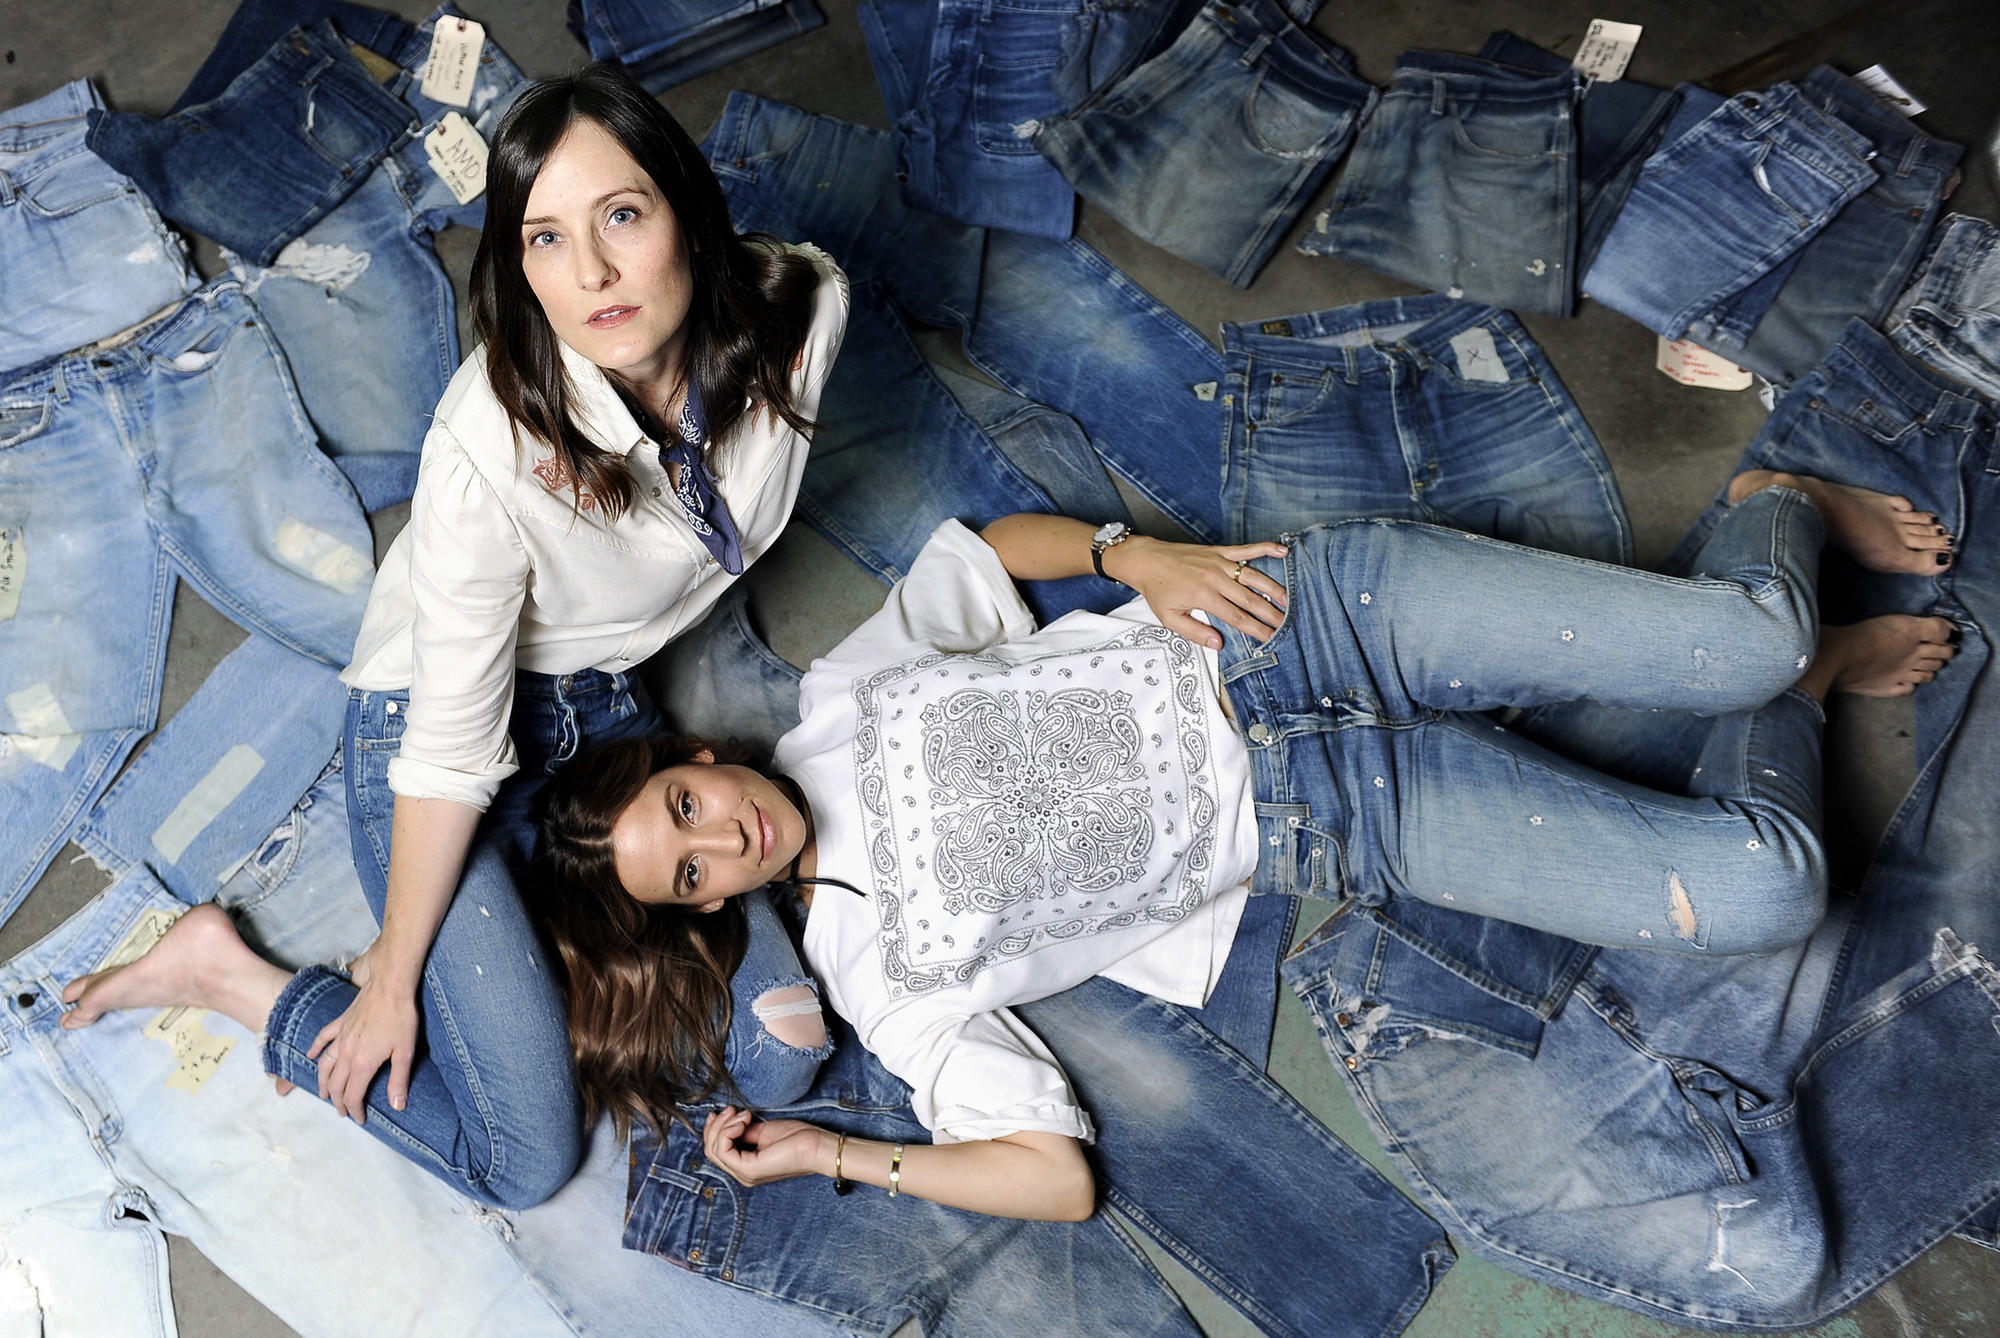 Misty Zollars, left, and Kelly Urban, friends and co-founders of L.A.-based denim label Amo.